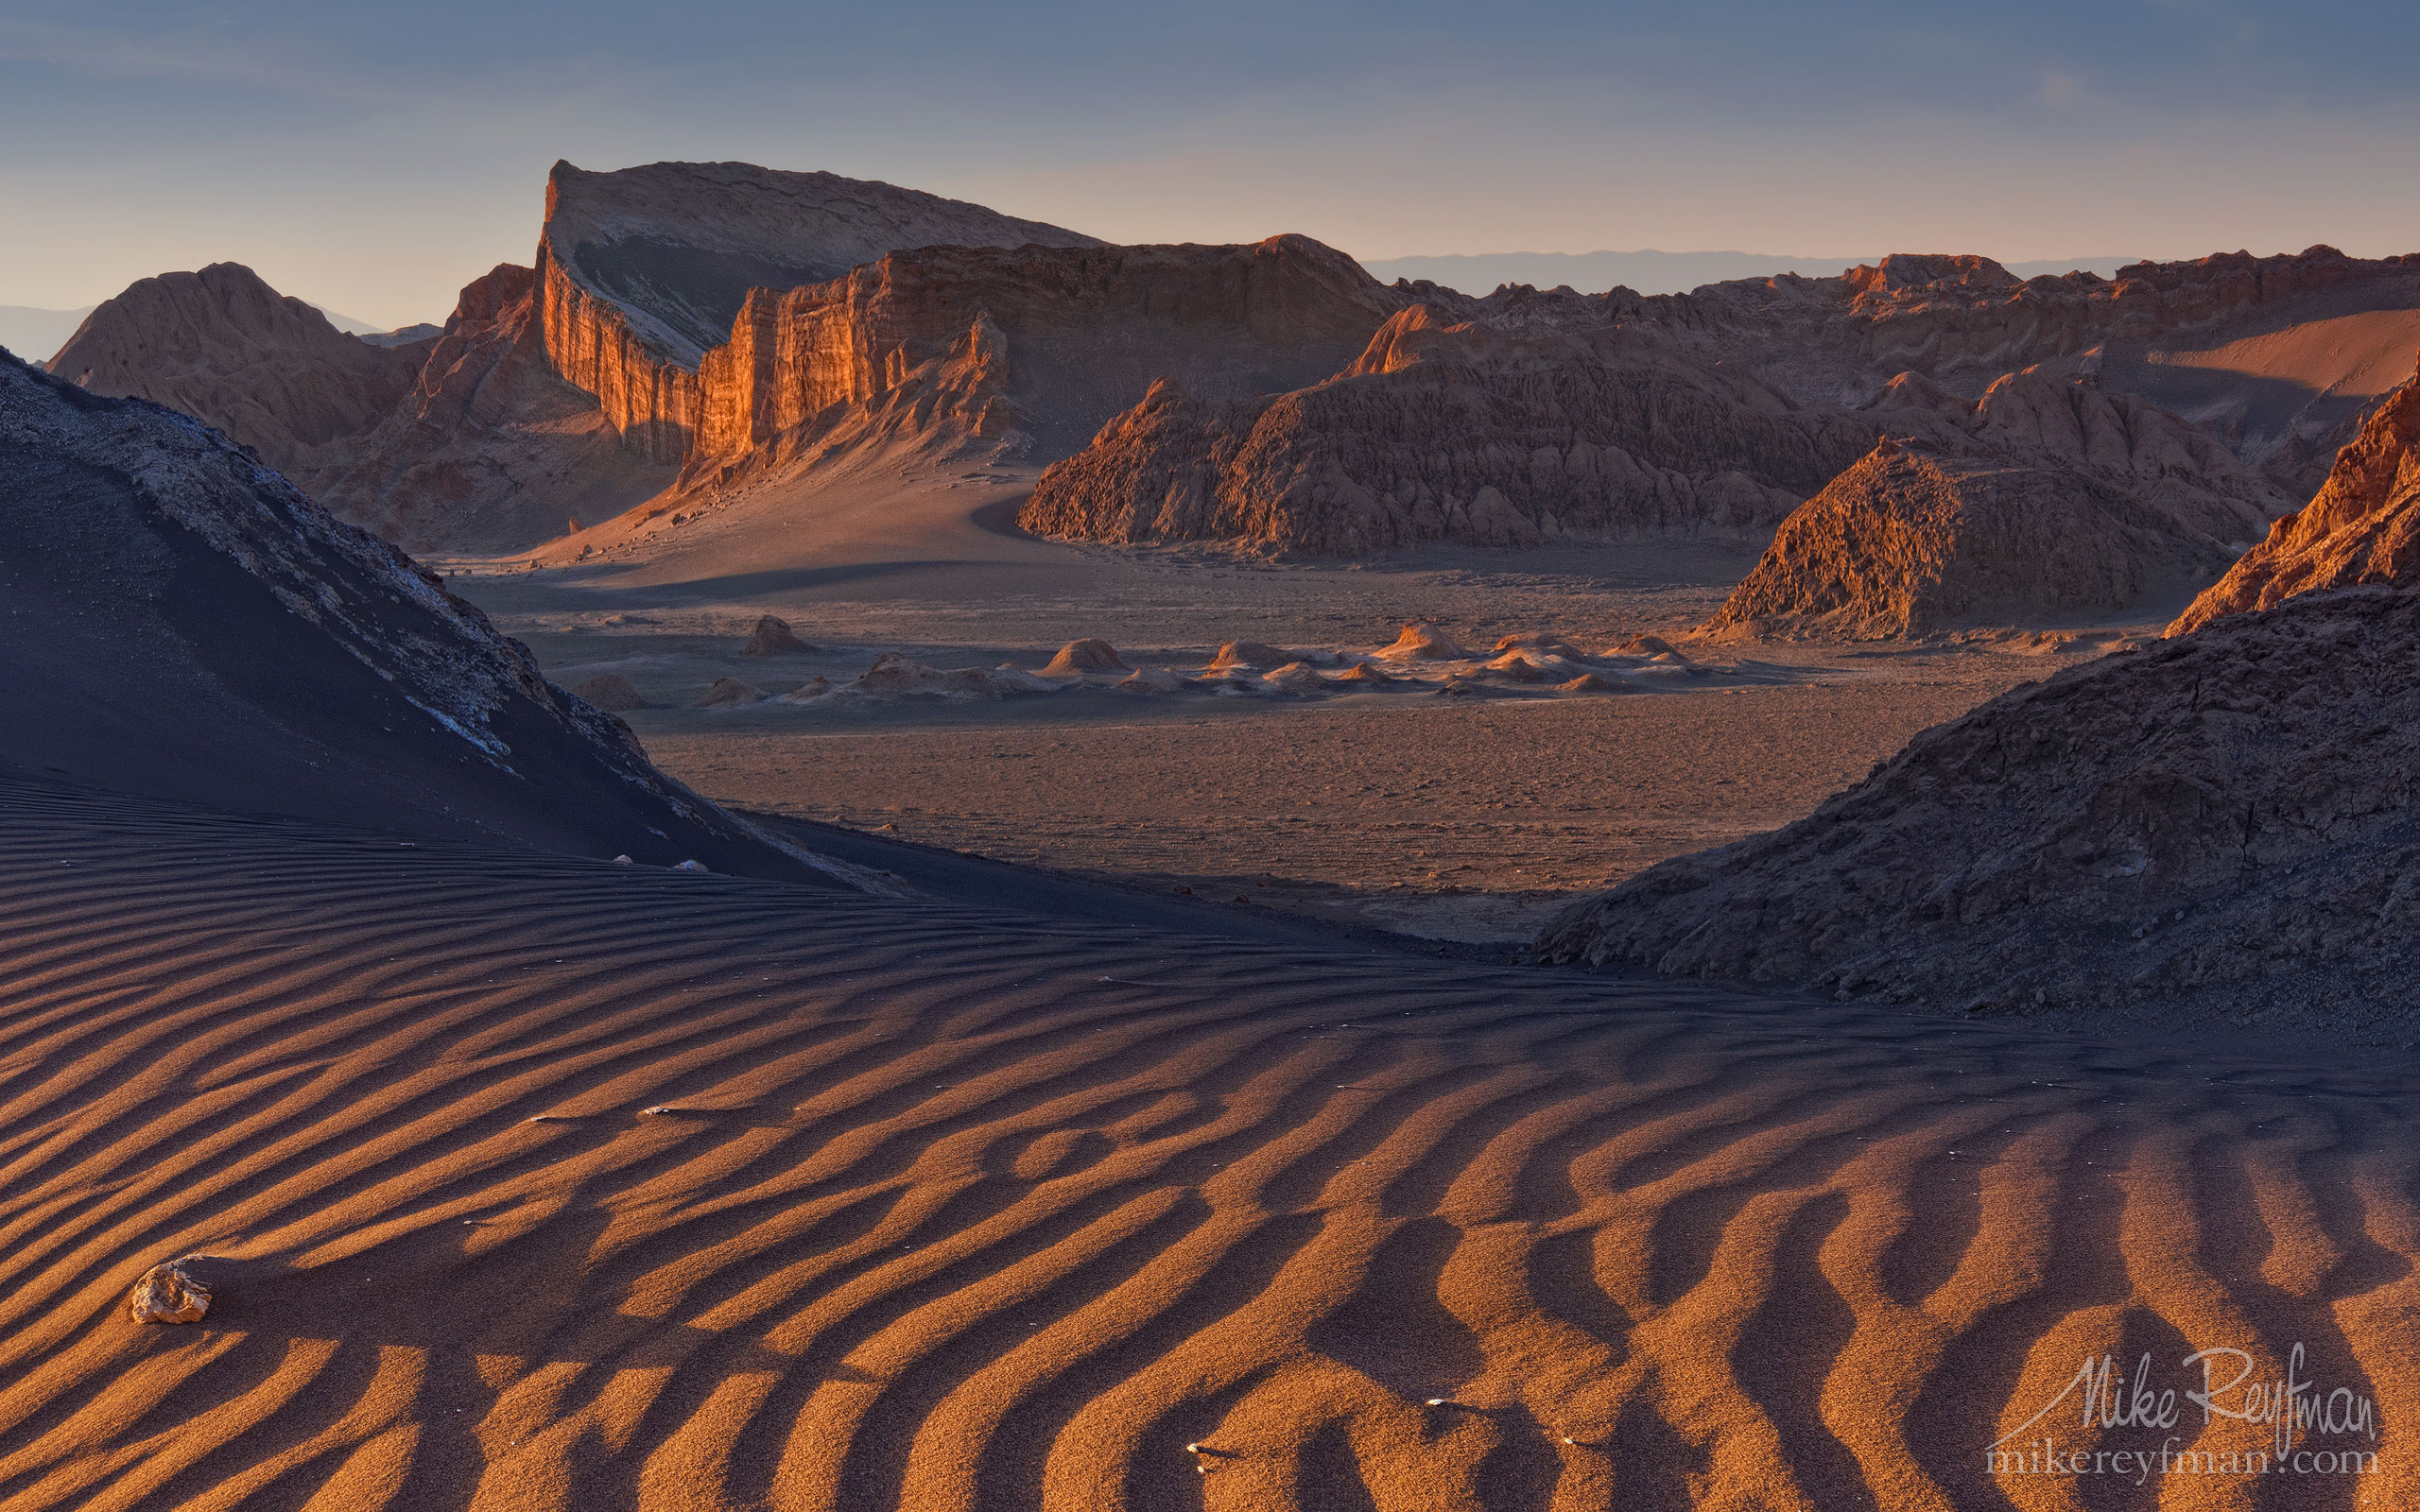 AA1-Q3X0654 - Atacama and Altiplano. The Driest Desert and The High Plain - Mike Reyfman Photography